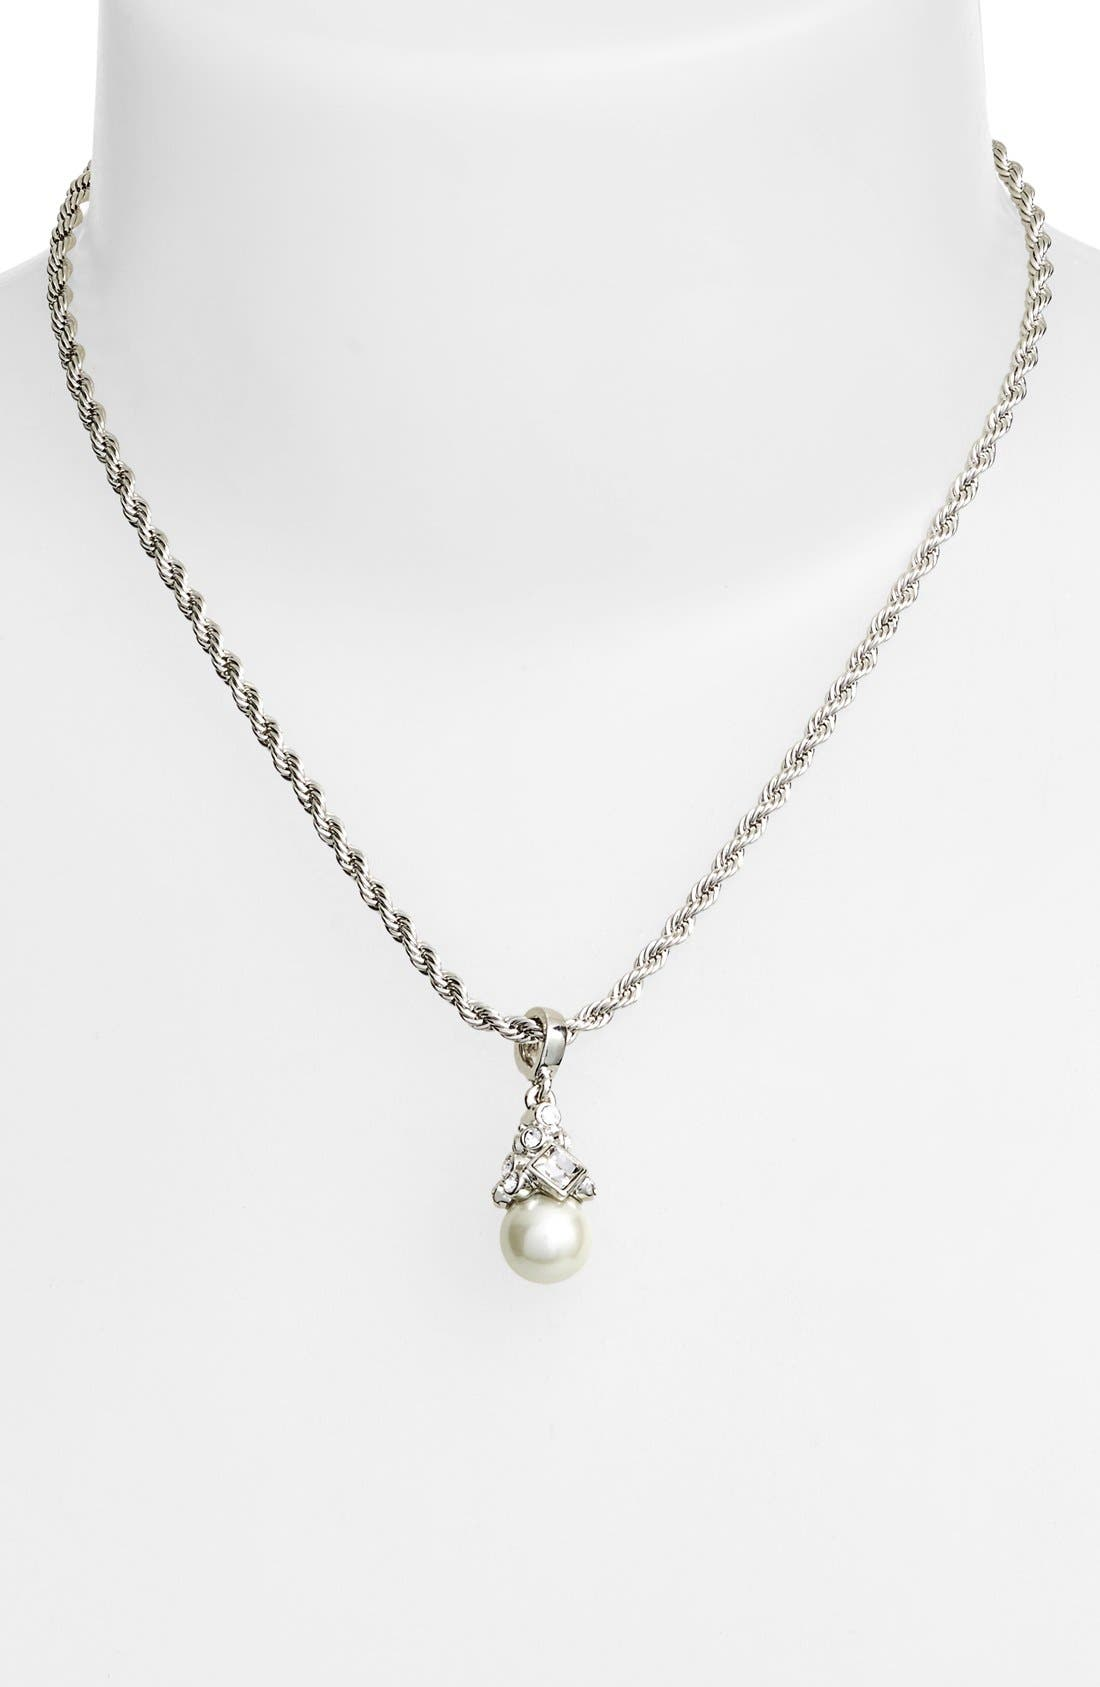 Imitation Pearl Pendant Necklace,                             Alternate thumbnail 2, color,                             Silver